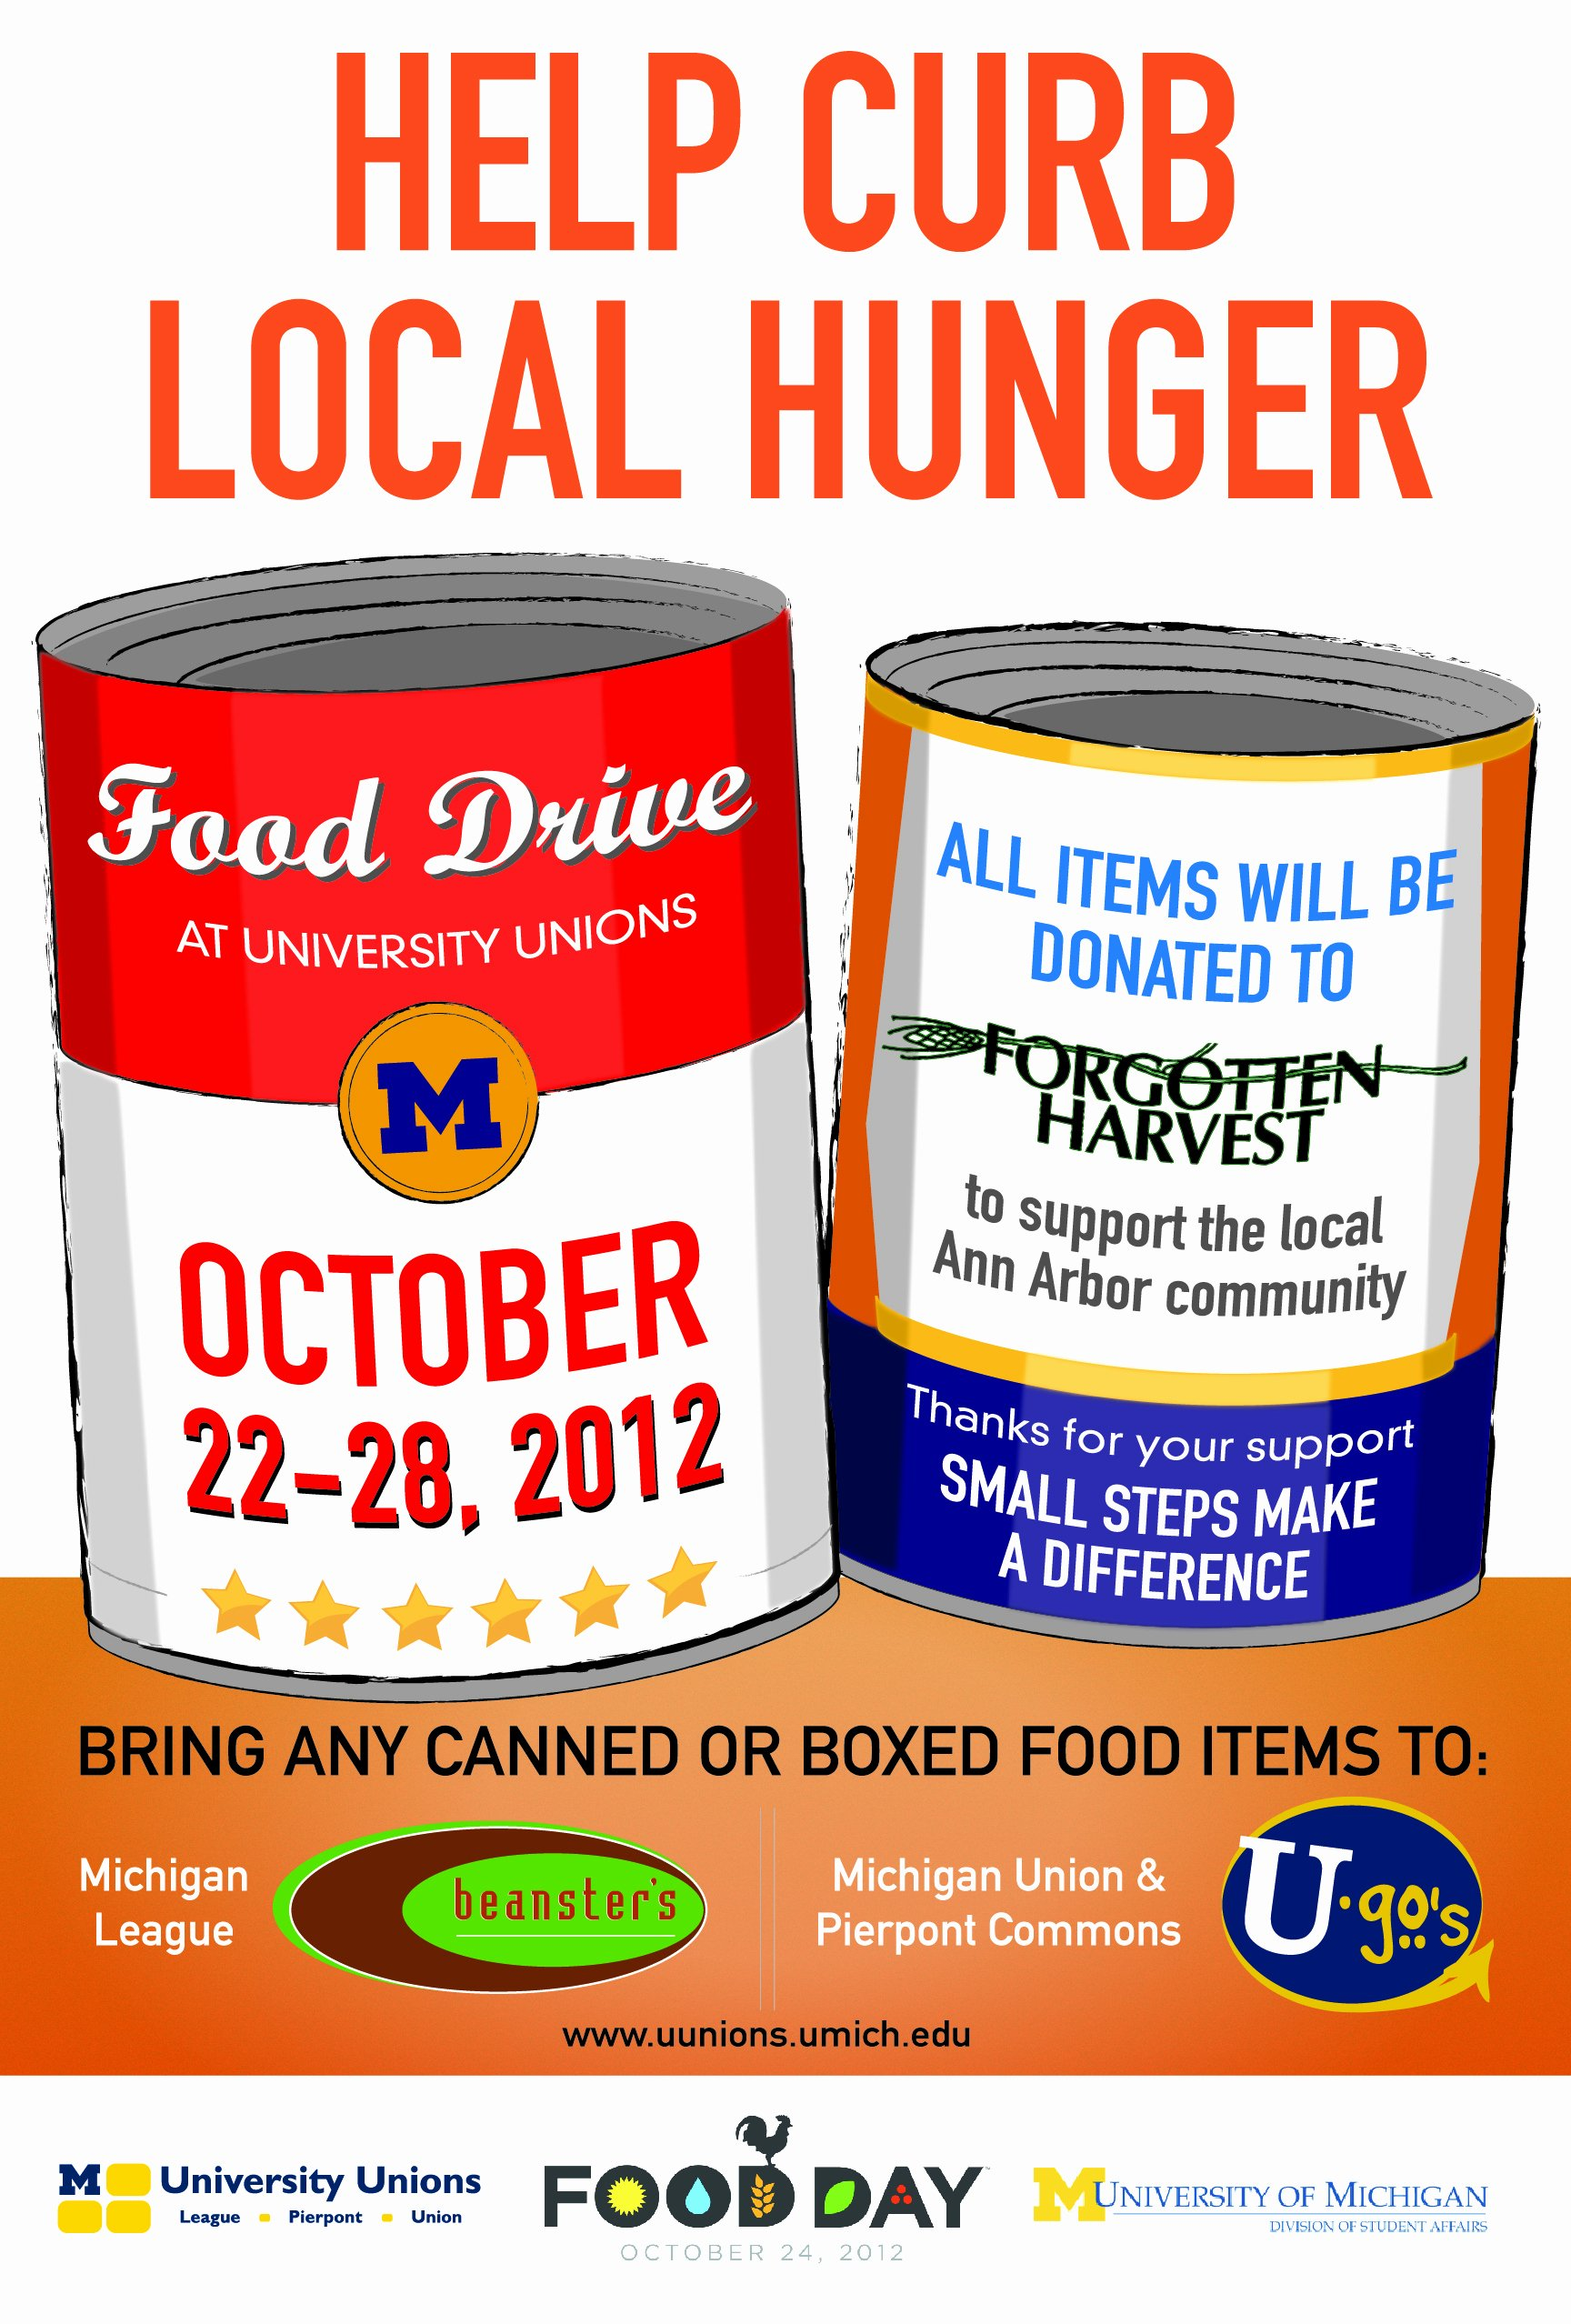 Can Food Drive Flyer New Celebrate Food Day Oct 22 26